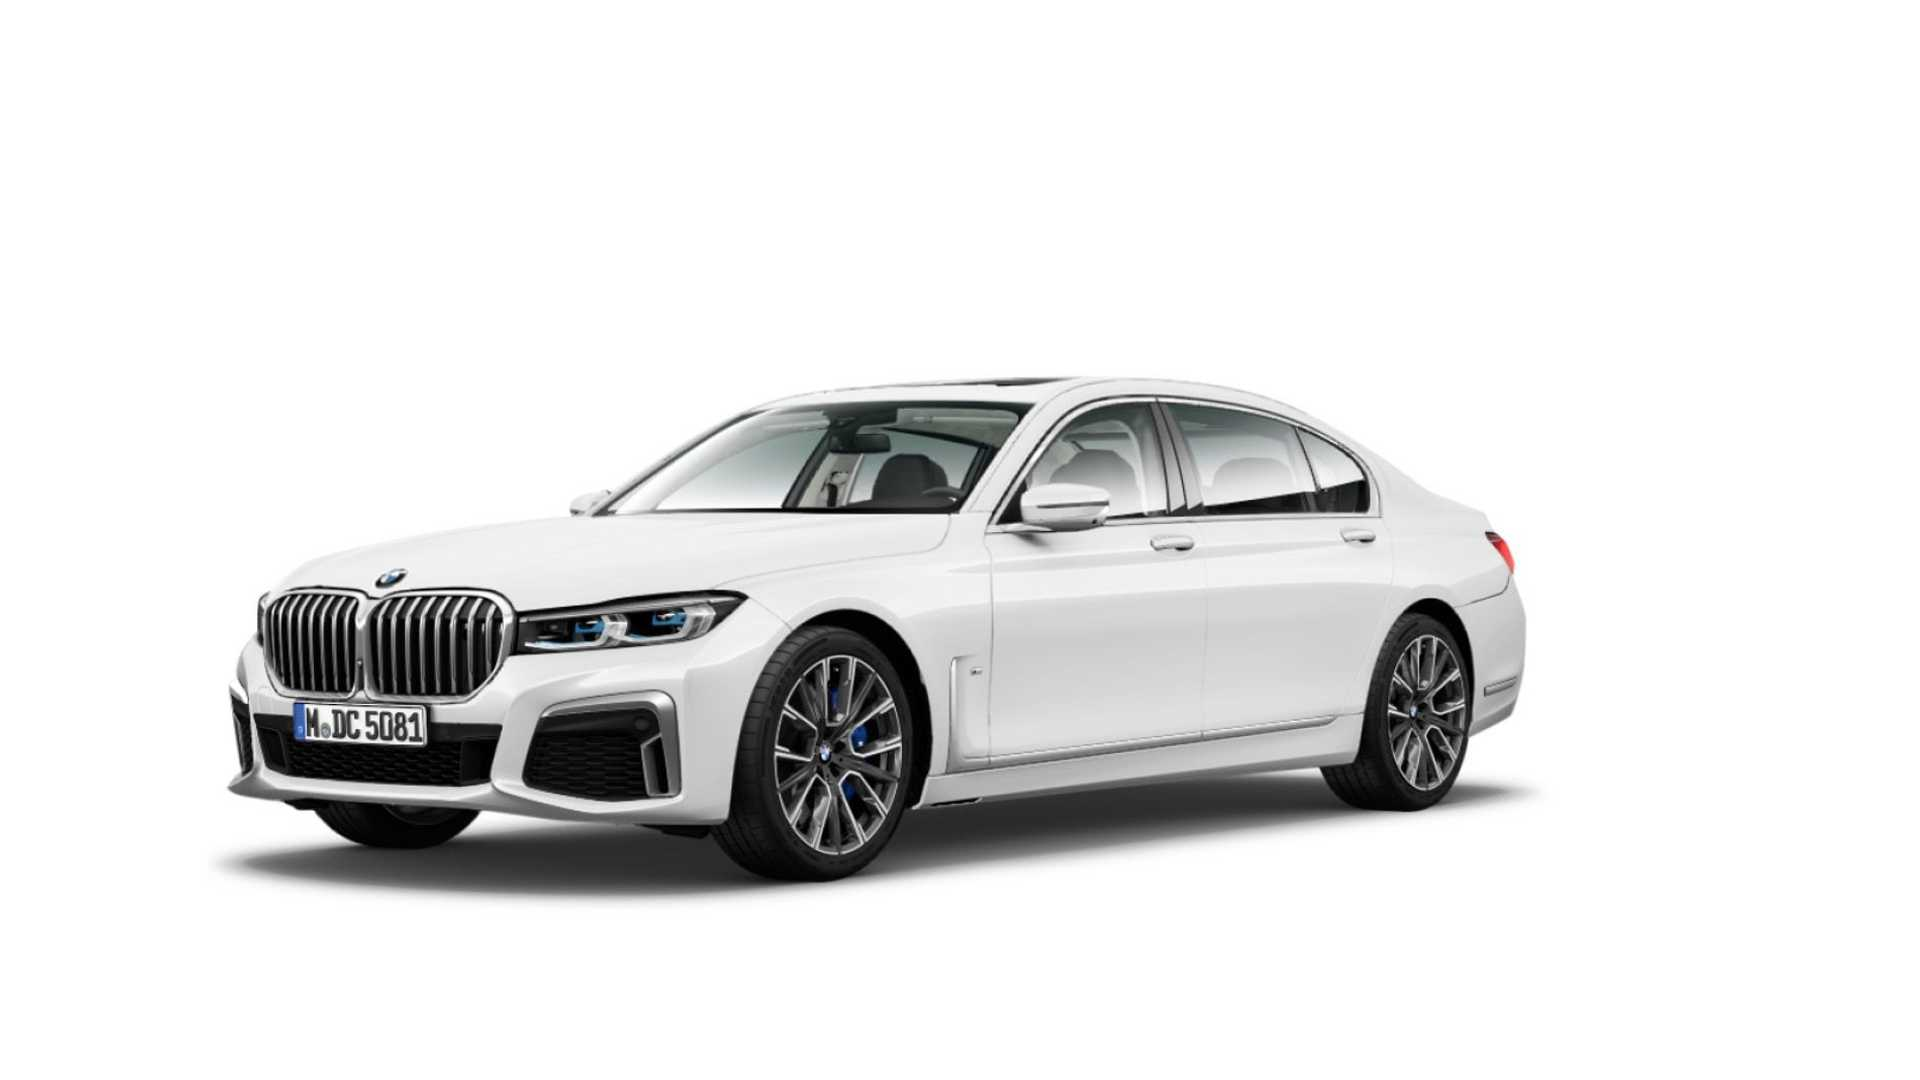 2020 Bmw 7 Series Leaked Distinctive Styling On The Menu For Flagship Sedan